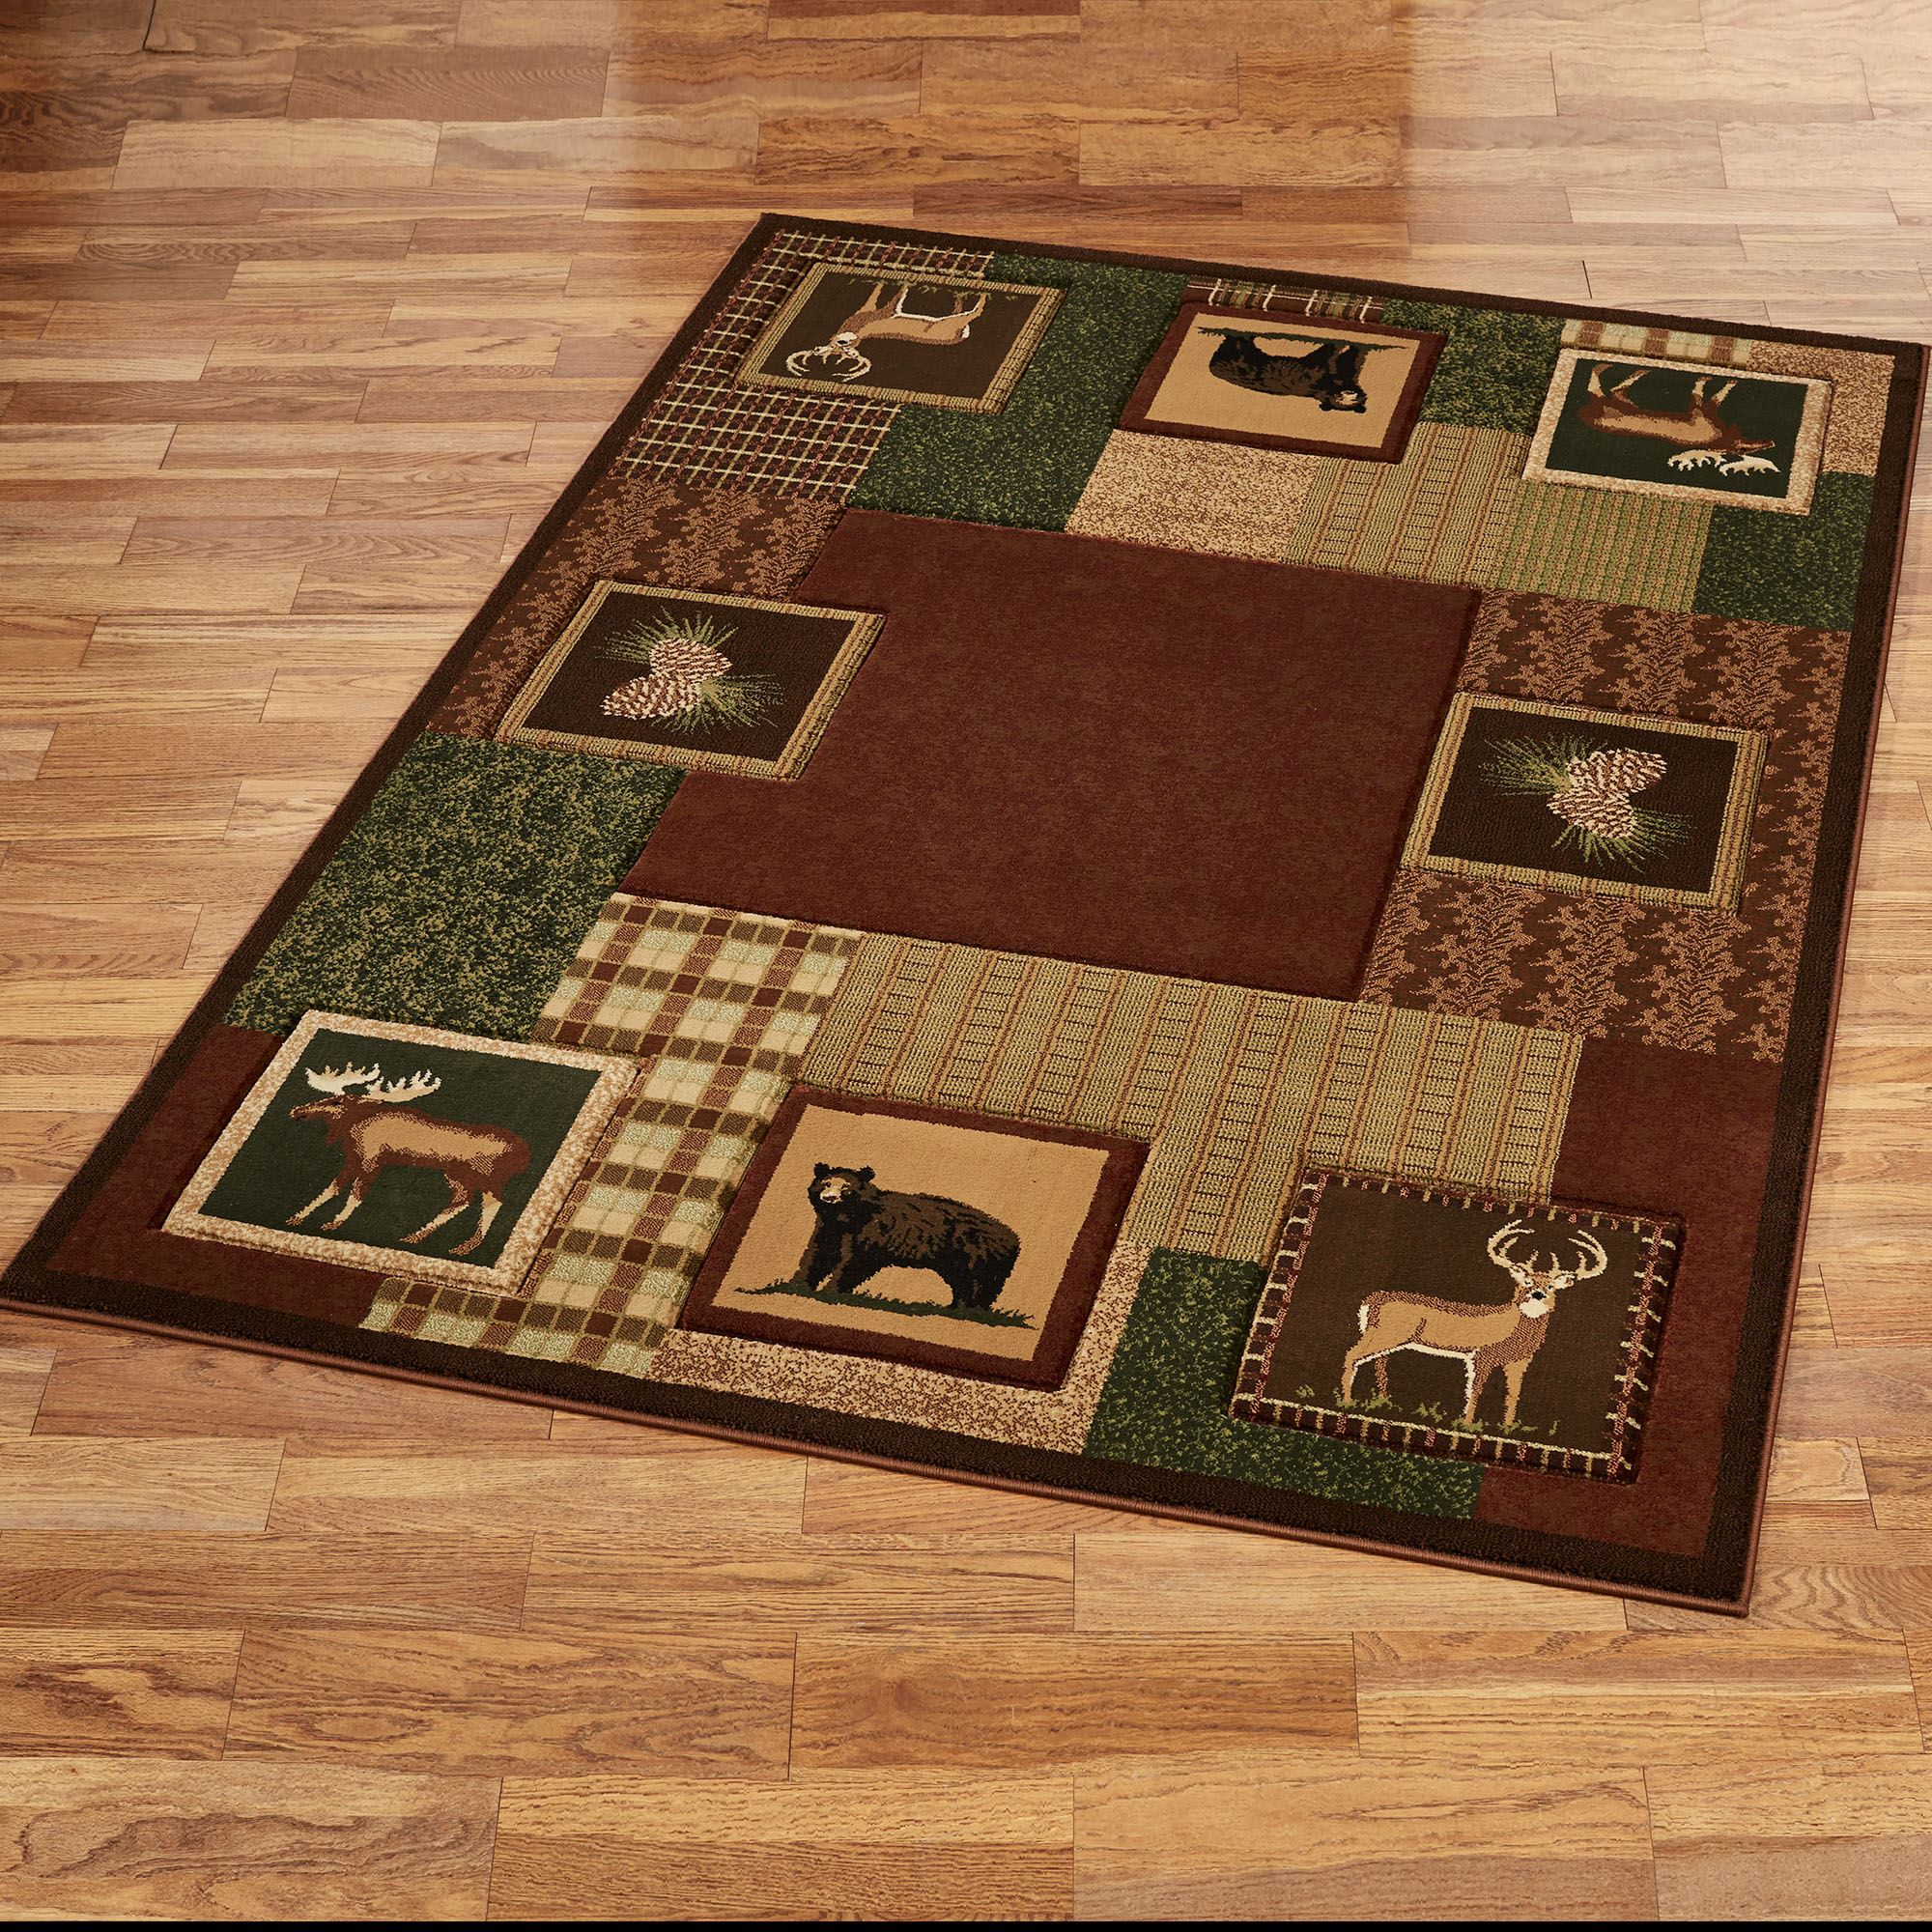 Honan Stain Resistant Rustic Wildlife Area Rugs By Donna Sharp